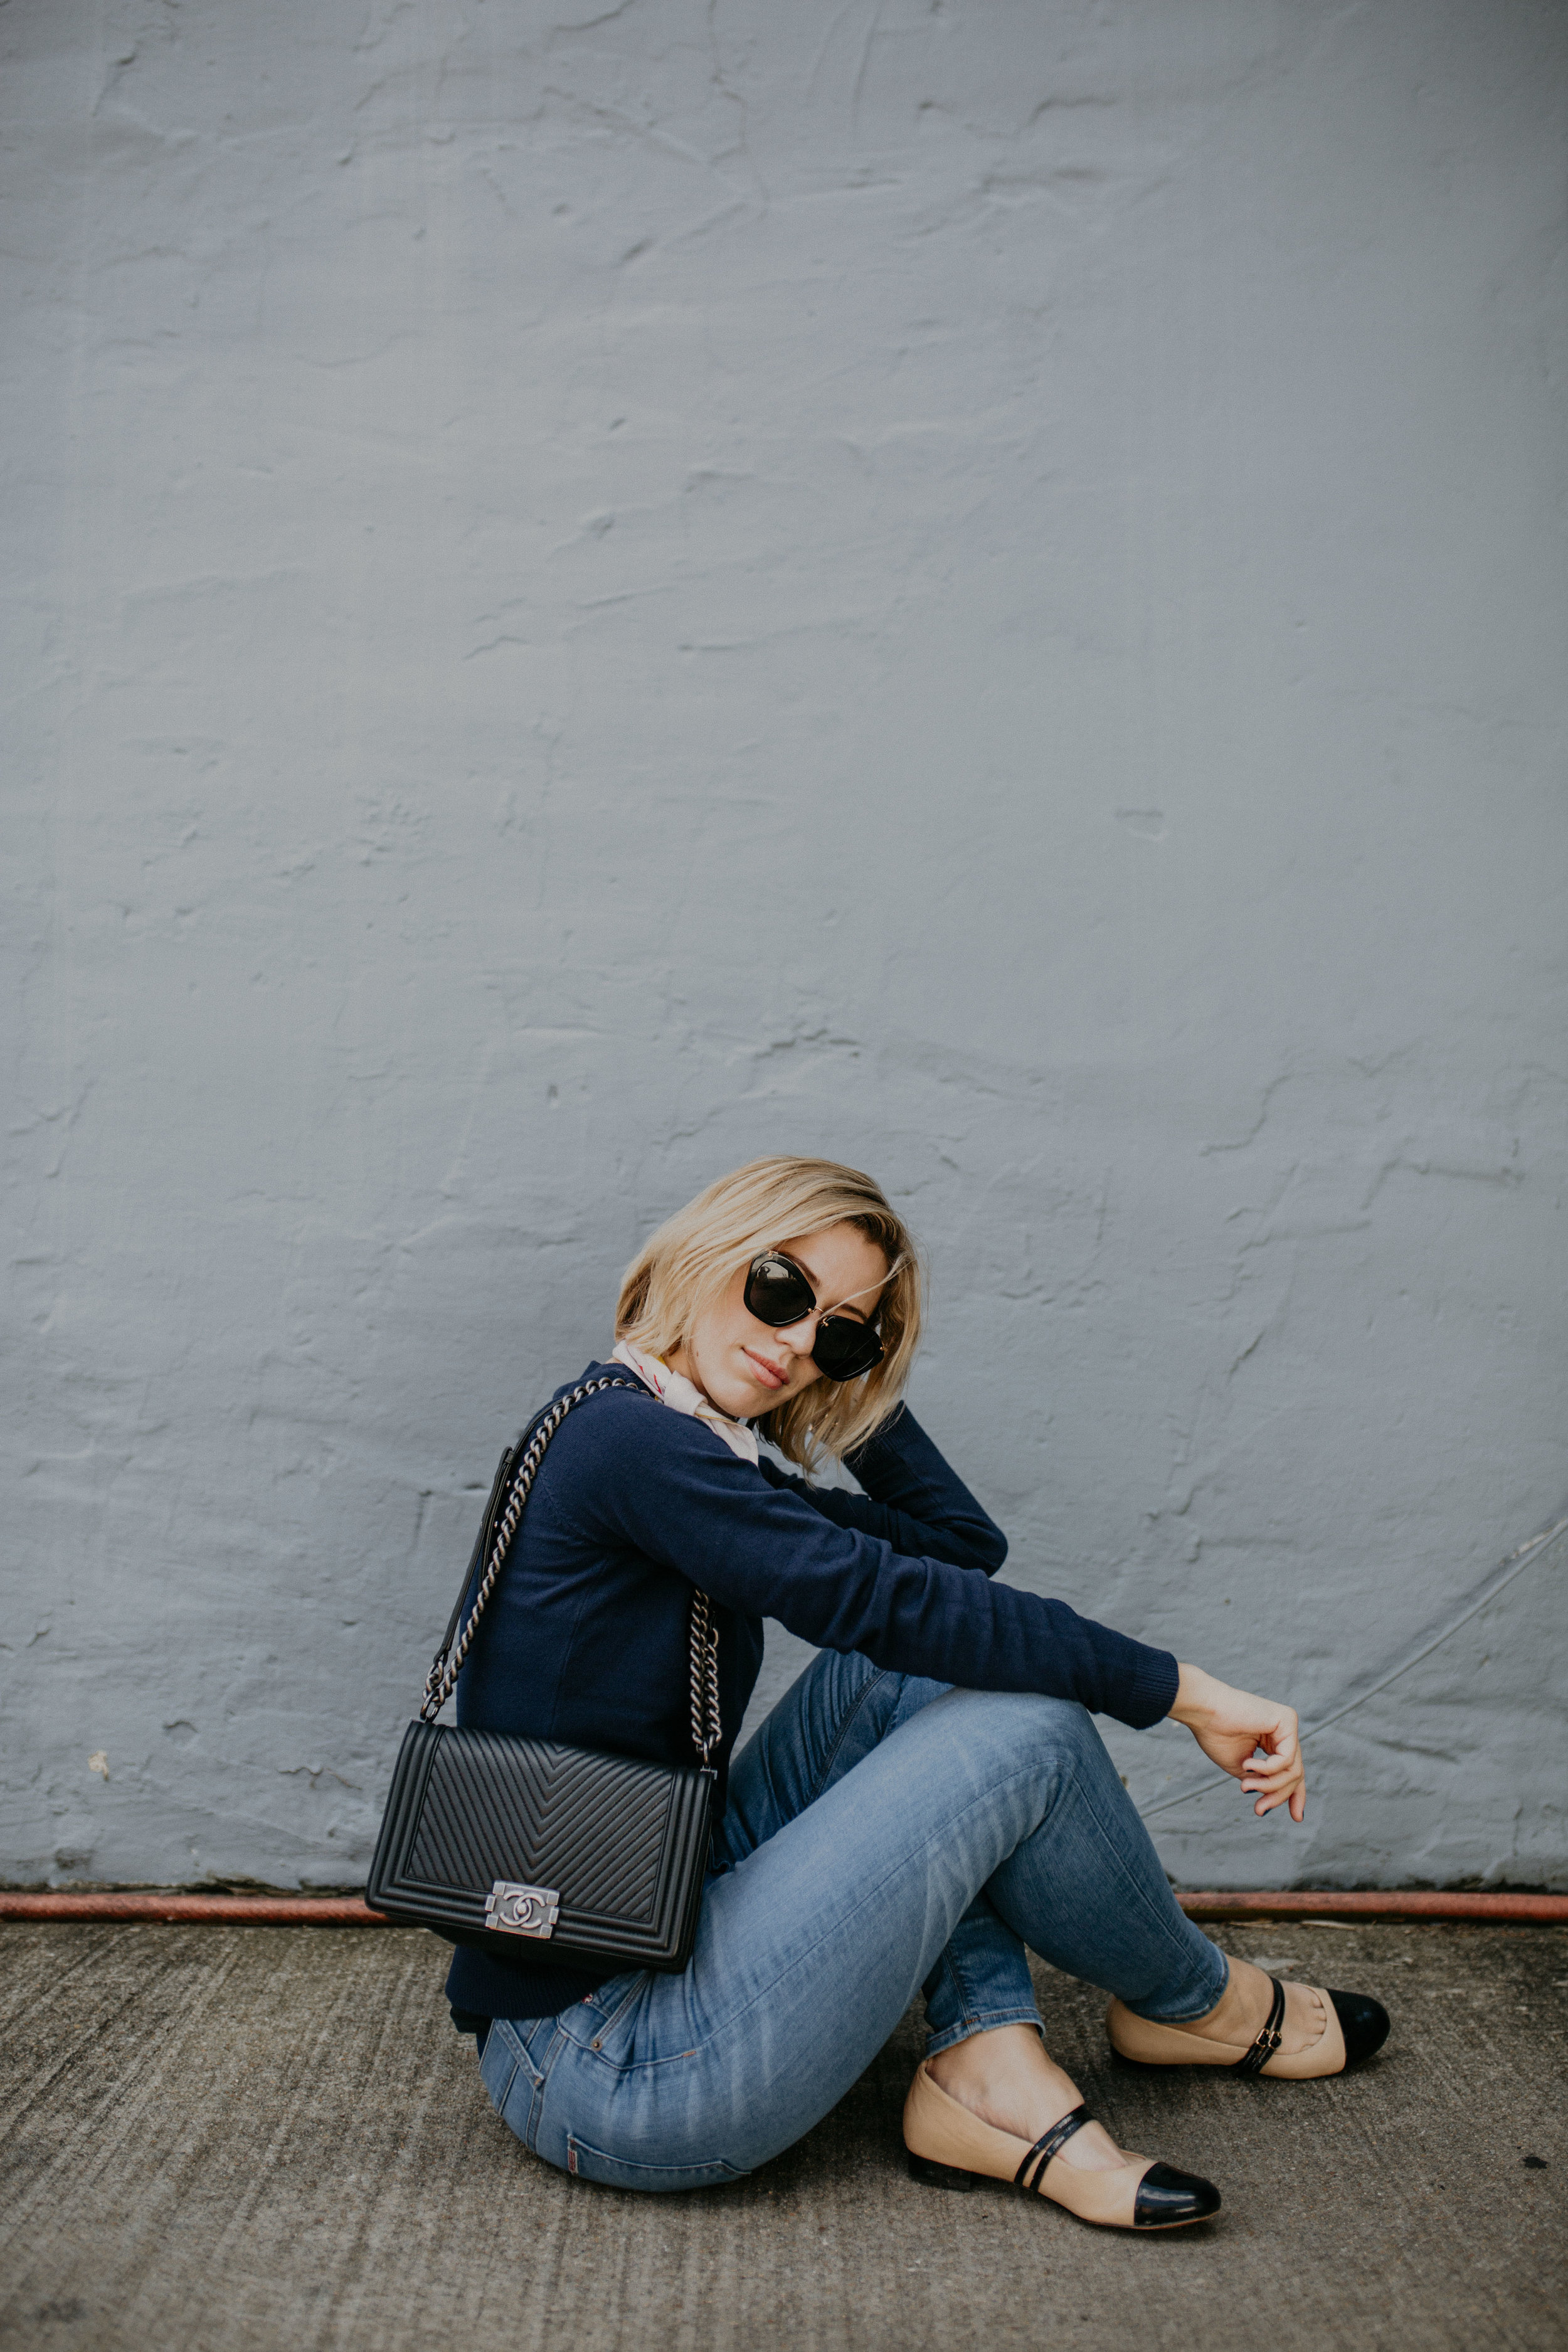 Photos by  Erin Krespan  //Wearing  Hudson Jeans via Fitcode  c/o,  Take 5 Boutique  sweater,  scarf (comes in a set of 4!) and  nail polish in Odeon  via Odeme c/o, Chanel bag via Bag, Borrow or Steal ,  Ukies flats ,  Fossil Q smartwatch  c/o,  Sophie Blake   bracelet,  Miu Miu sunnies